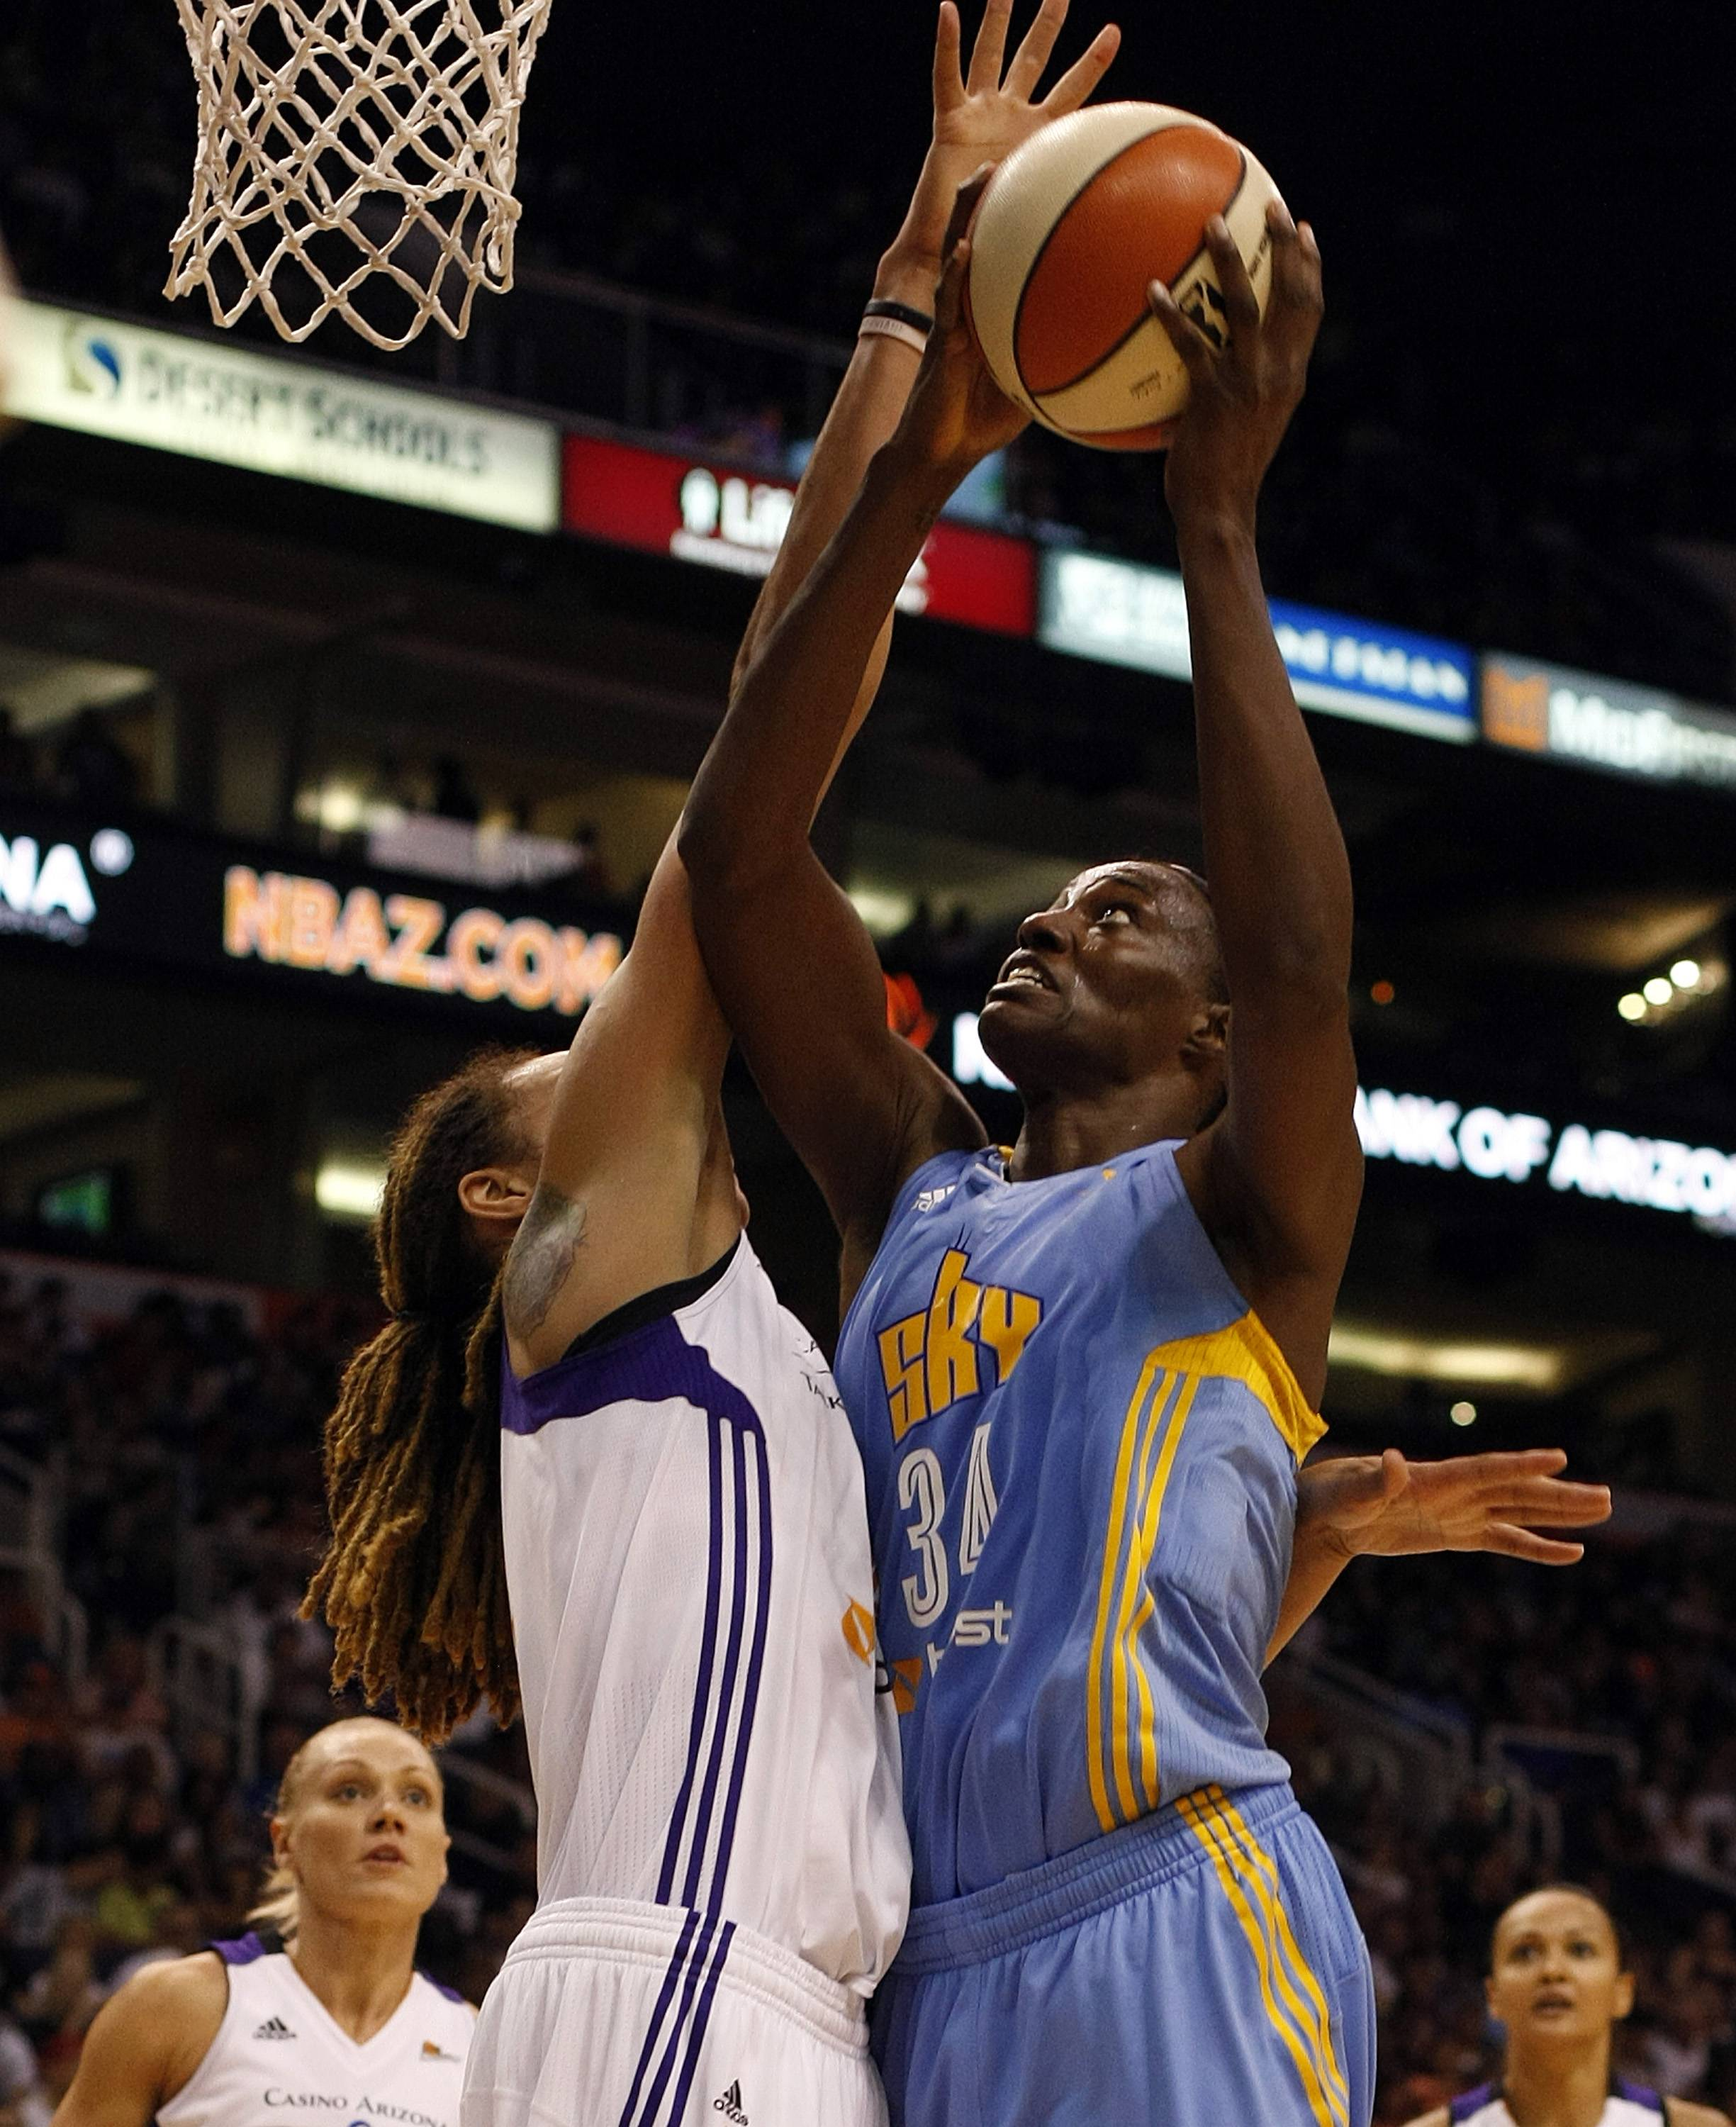 Olympic and all-star center Sylvia Fowles got her wish and is on her way to play for the Minnesota Lynx after the Sky's three-team trade.